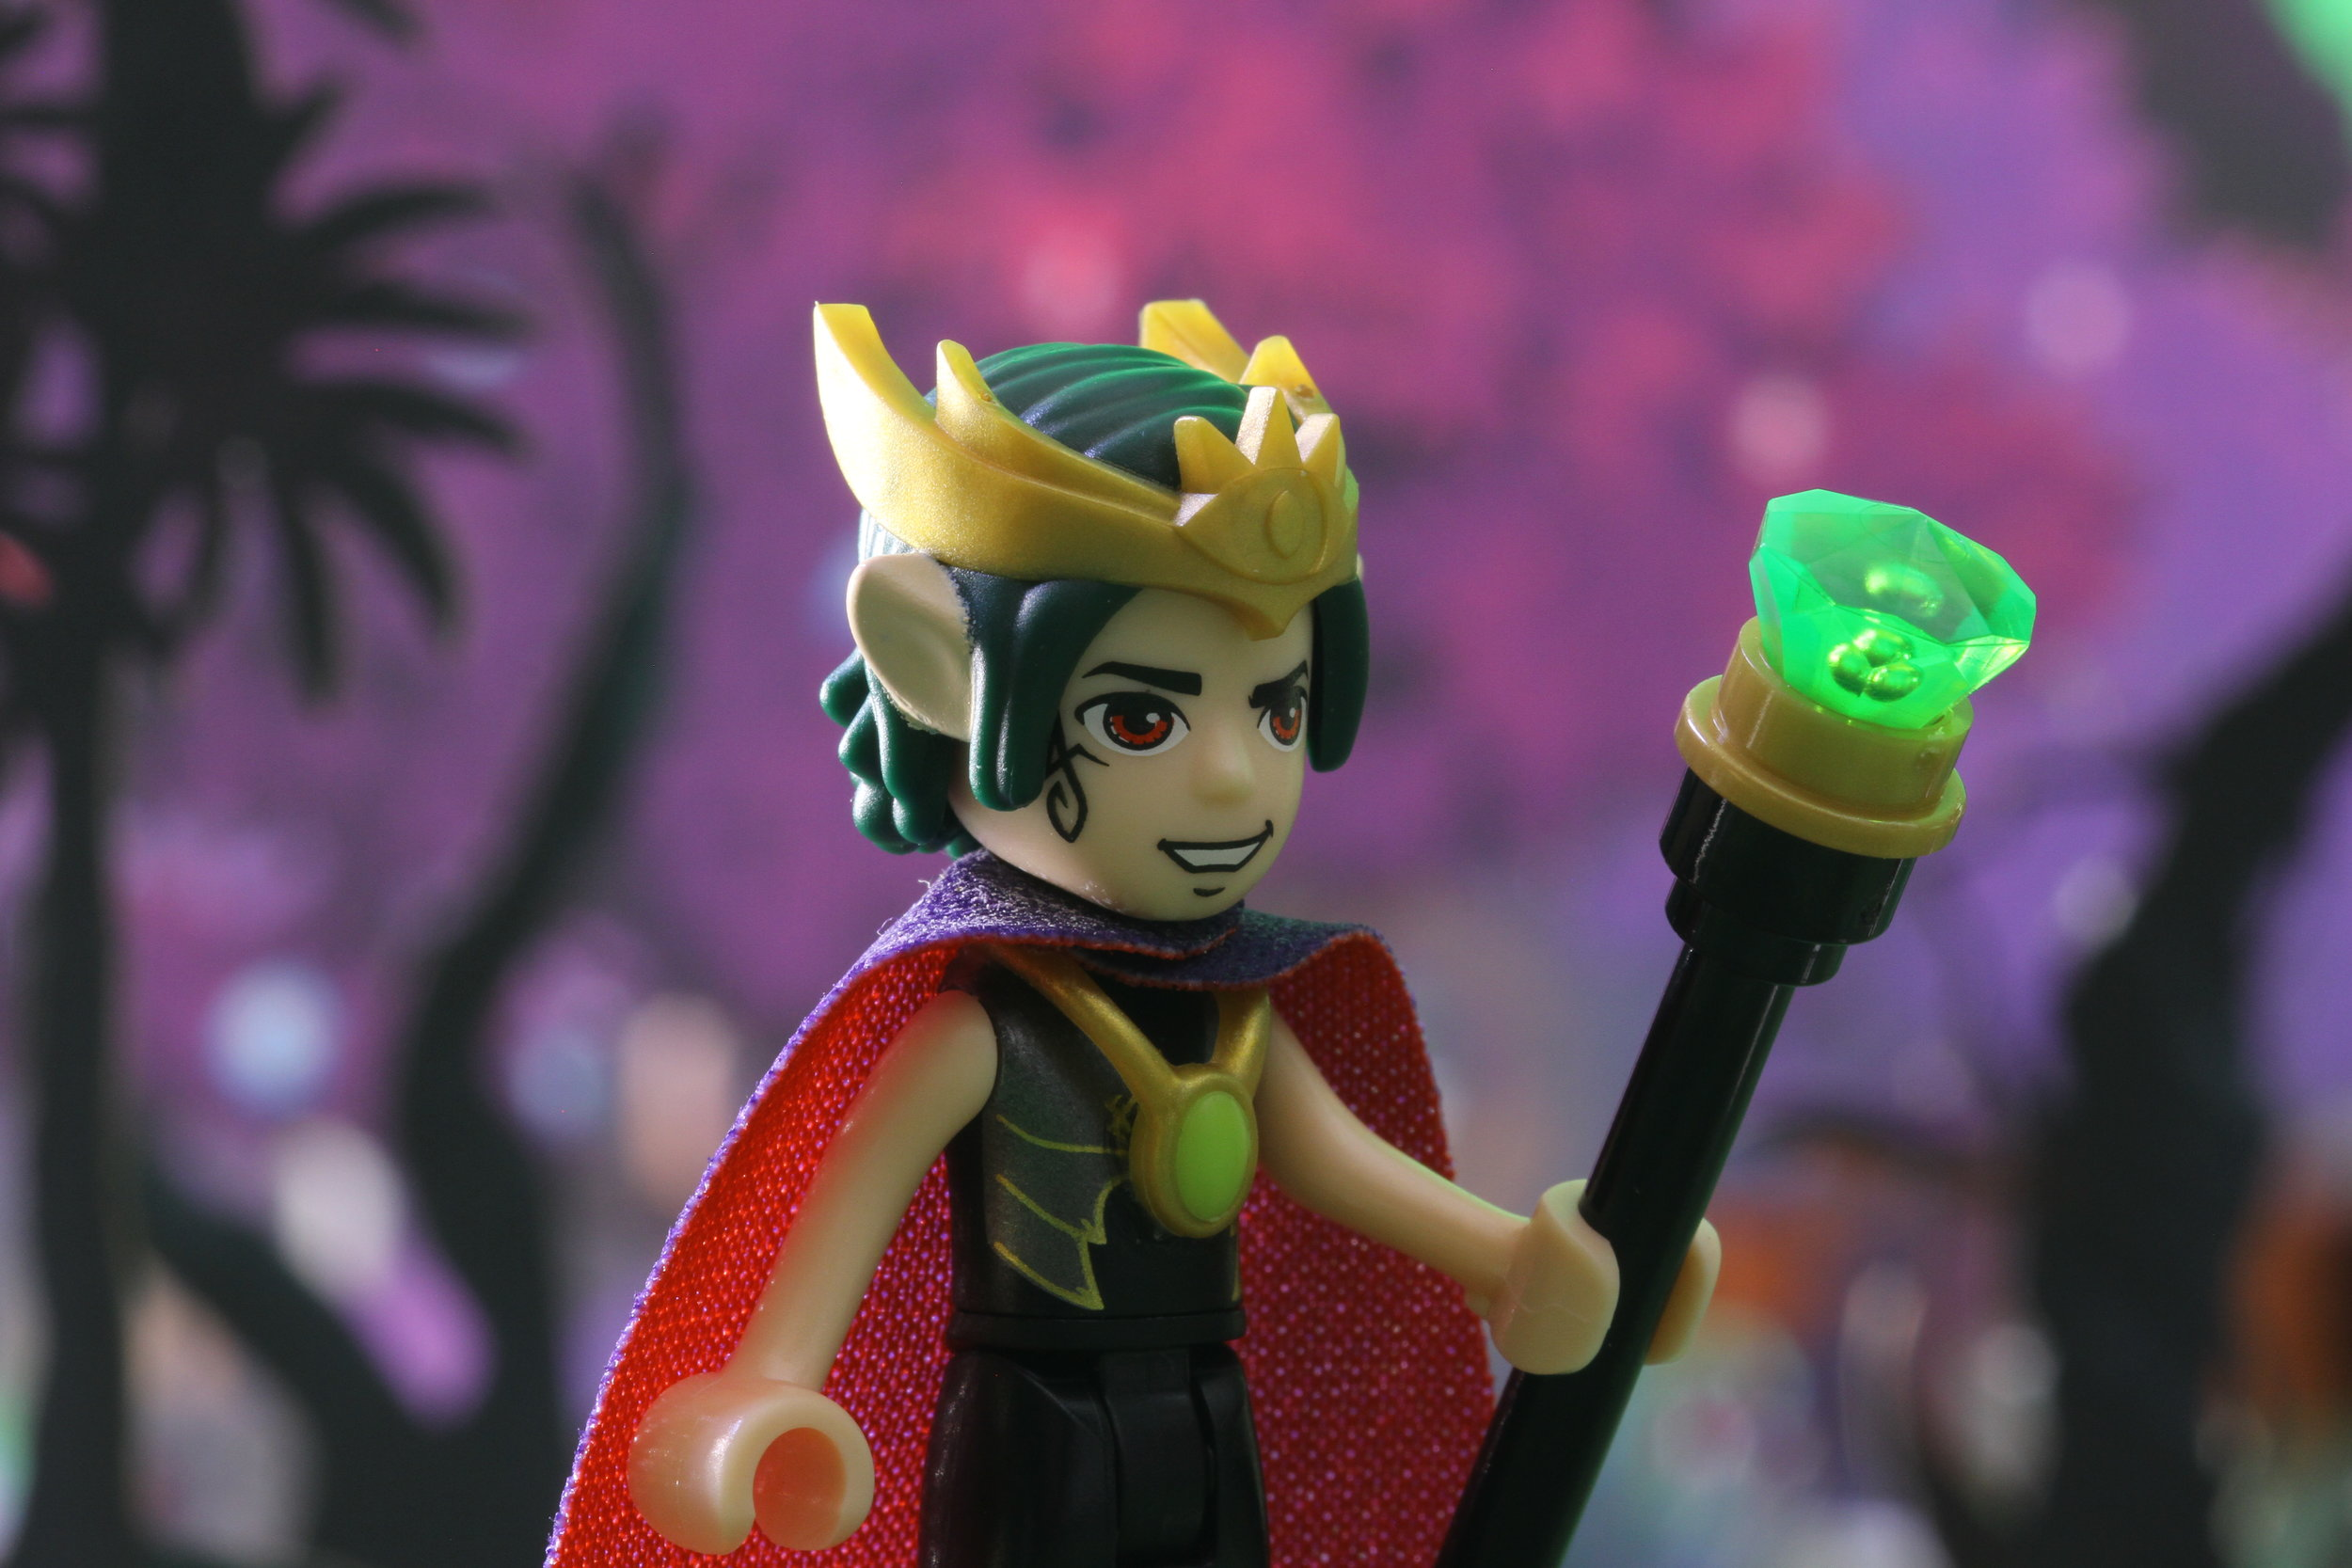 LEGO Elves - The second part of the story, displaying the other new set.